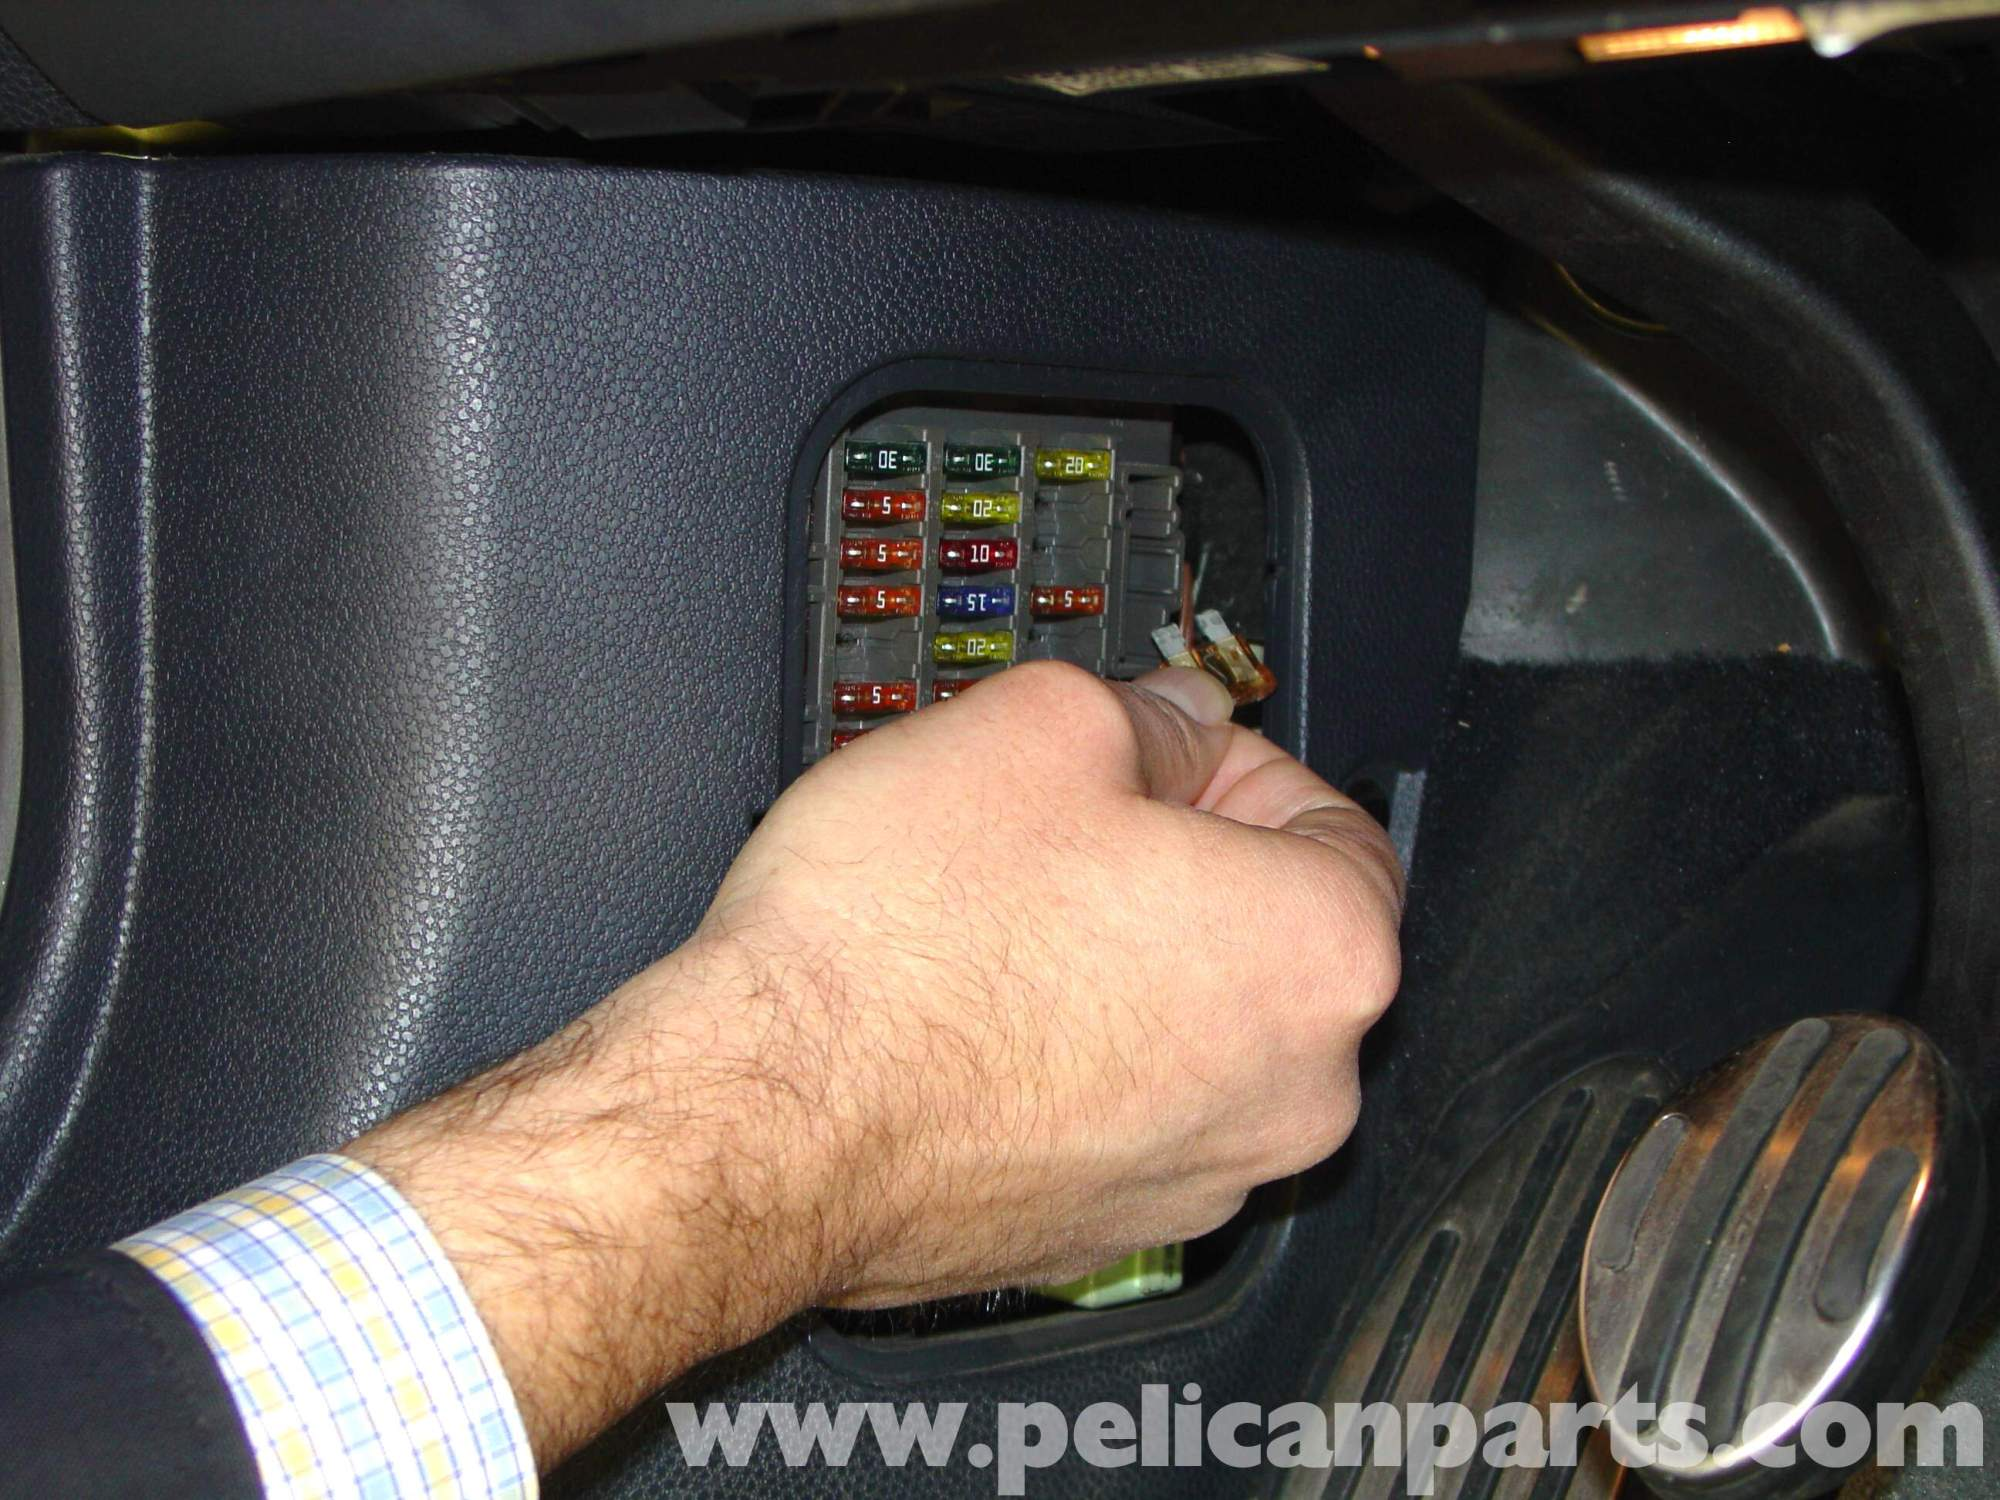 hight resolution of  pic03 pelican technical article installing performance software r50 2013 mini cooper fuse box location at cita